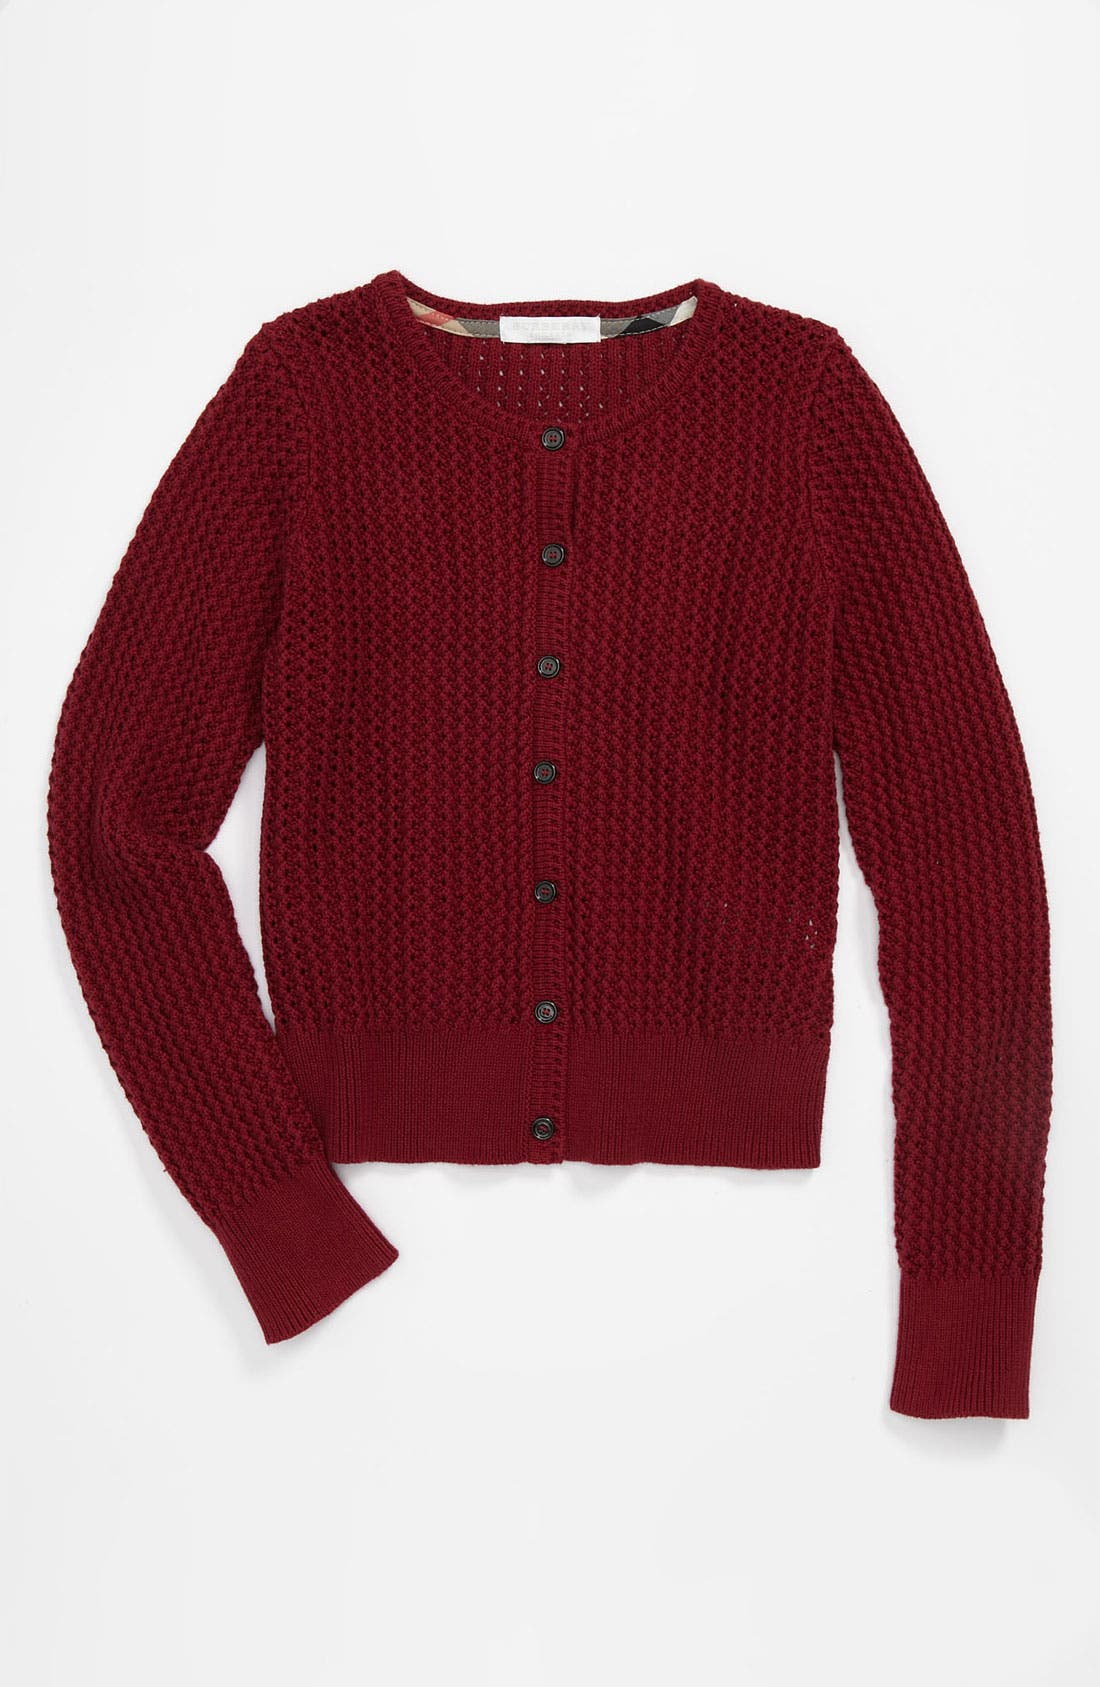 Main Image - Burberry 'Tobalt' Cardigan (Little Girls & Big Girls)